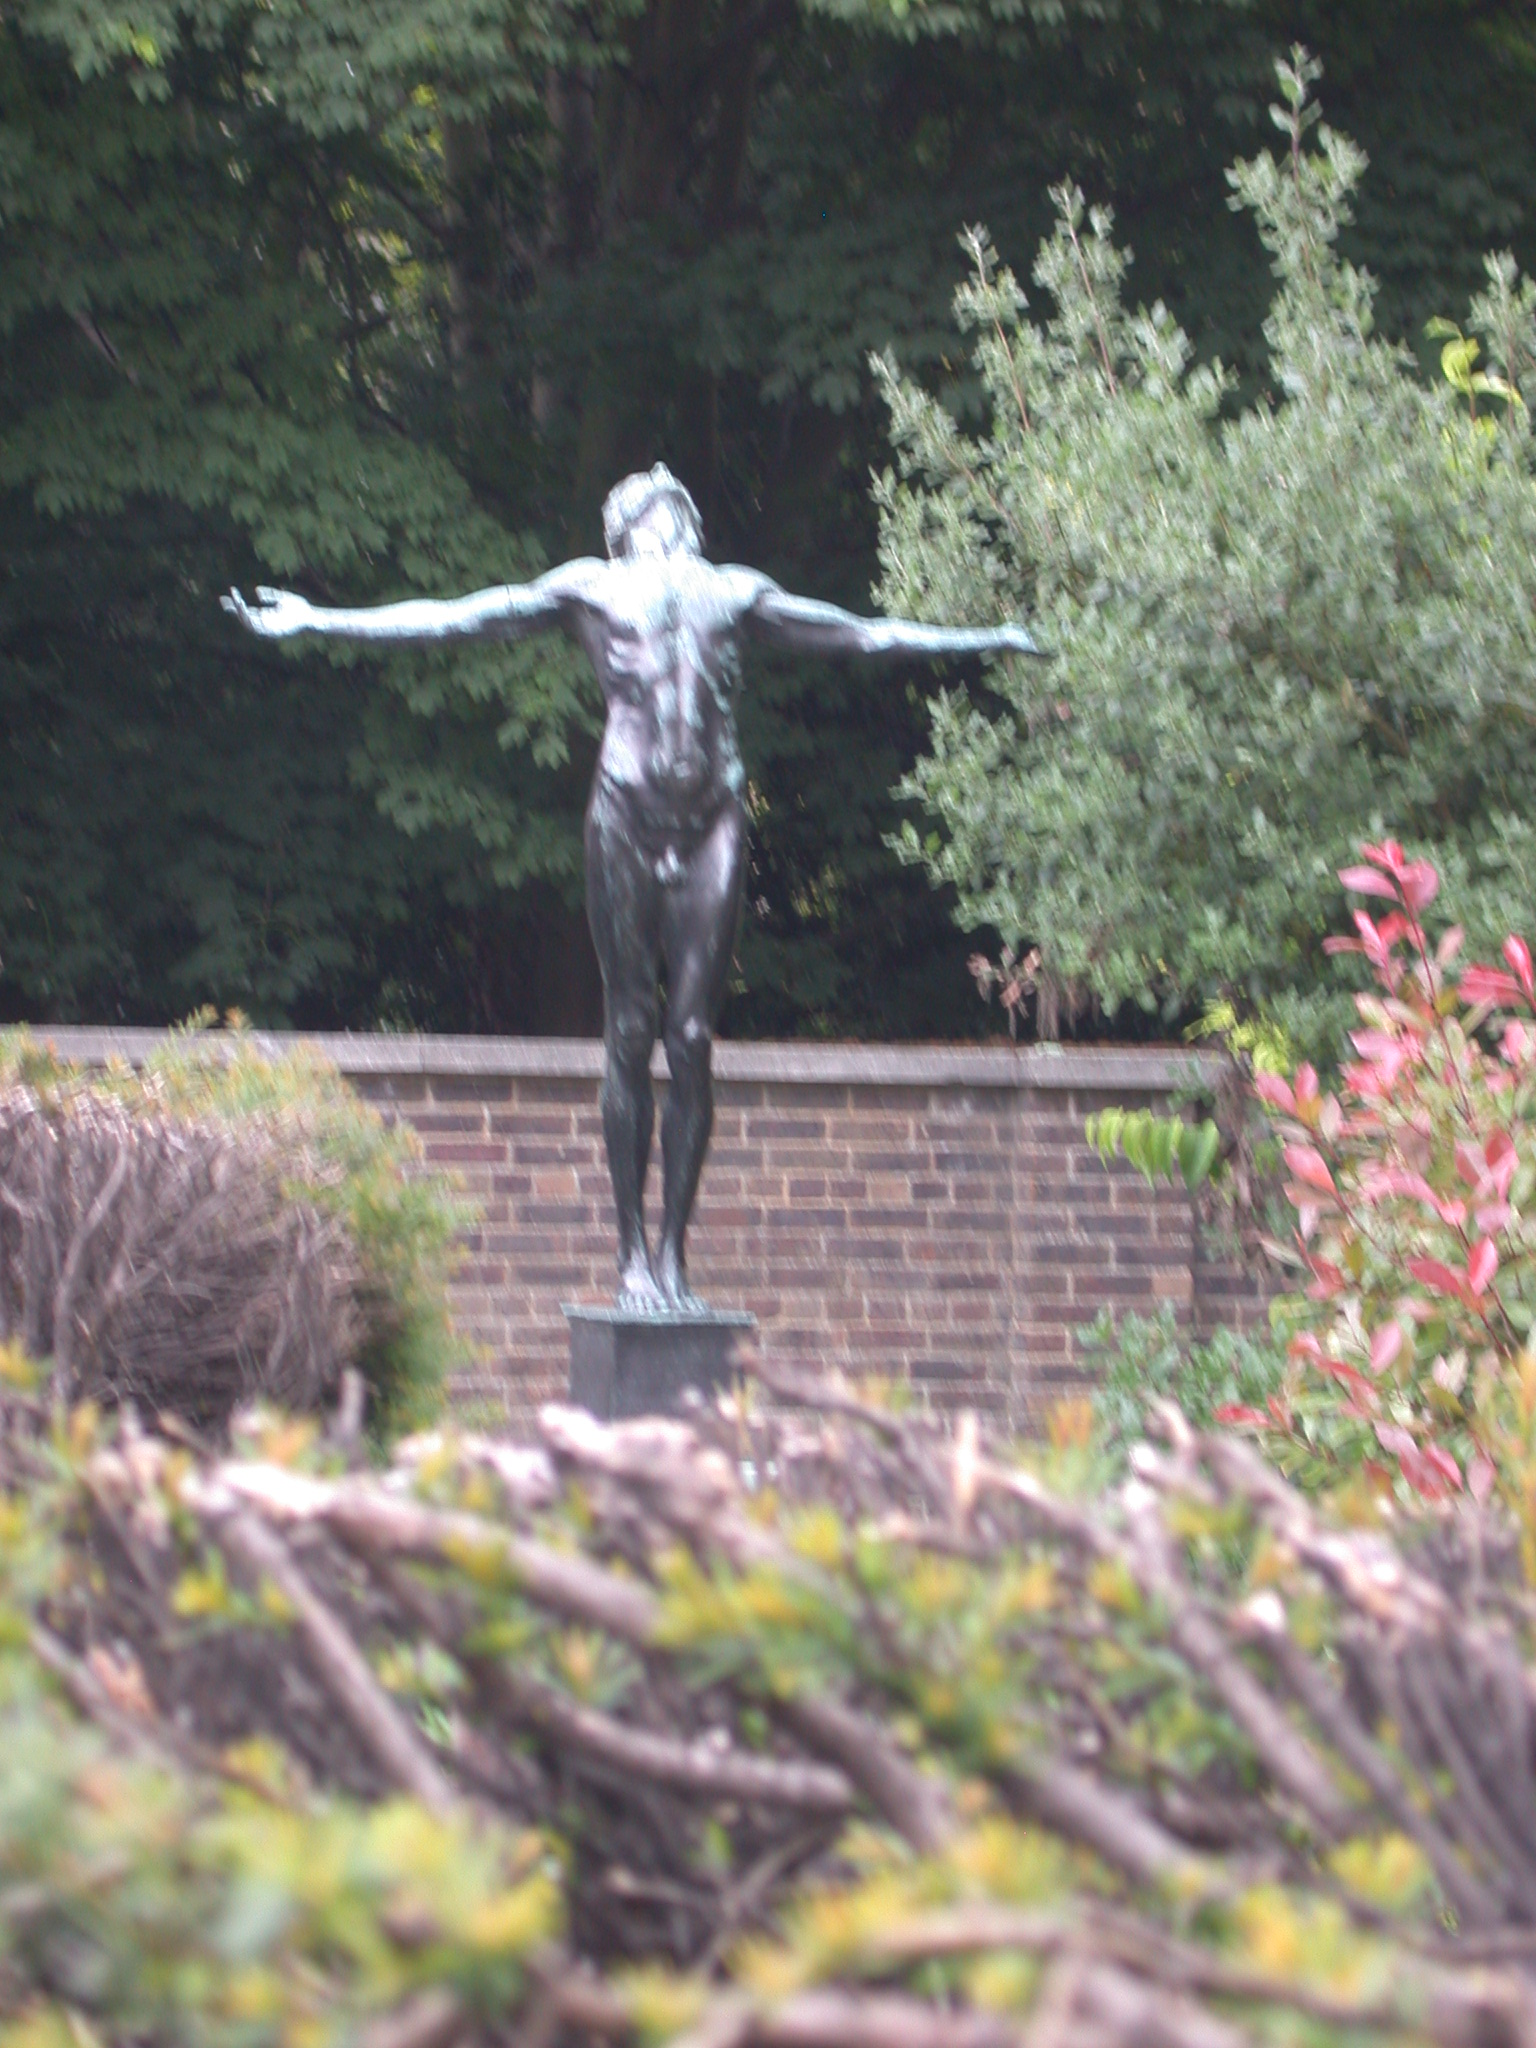 Statue of Nude Young Man, Scott Polar Research Institute, Cambridge, England